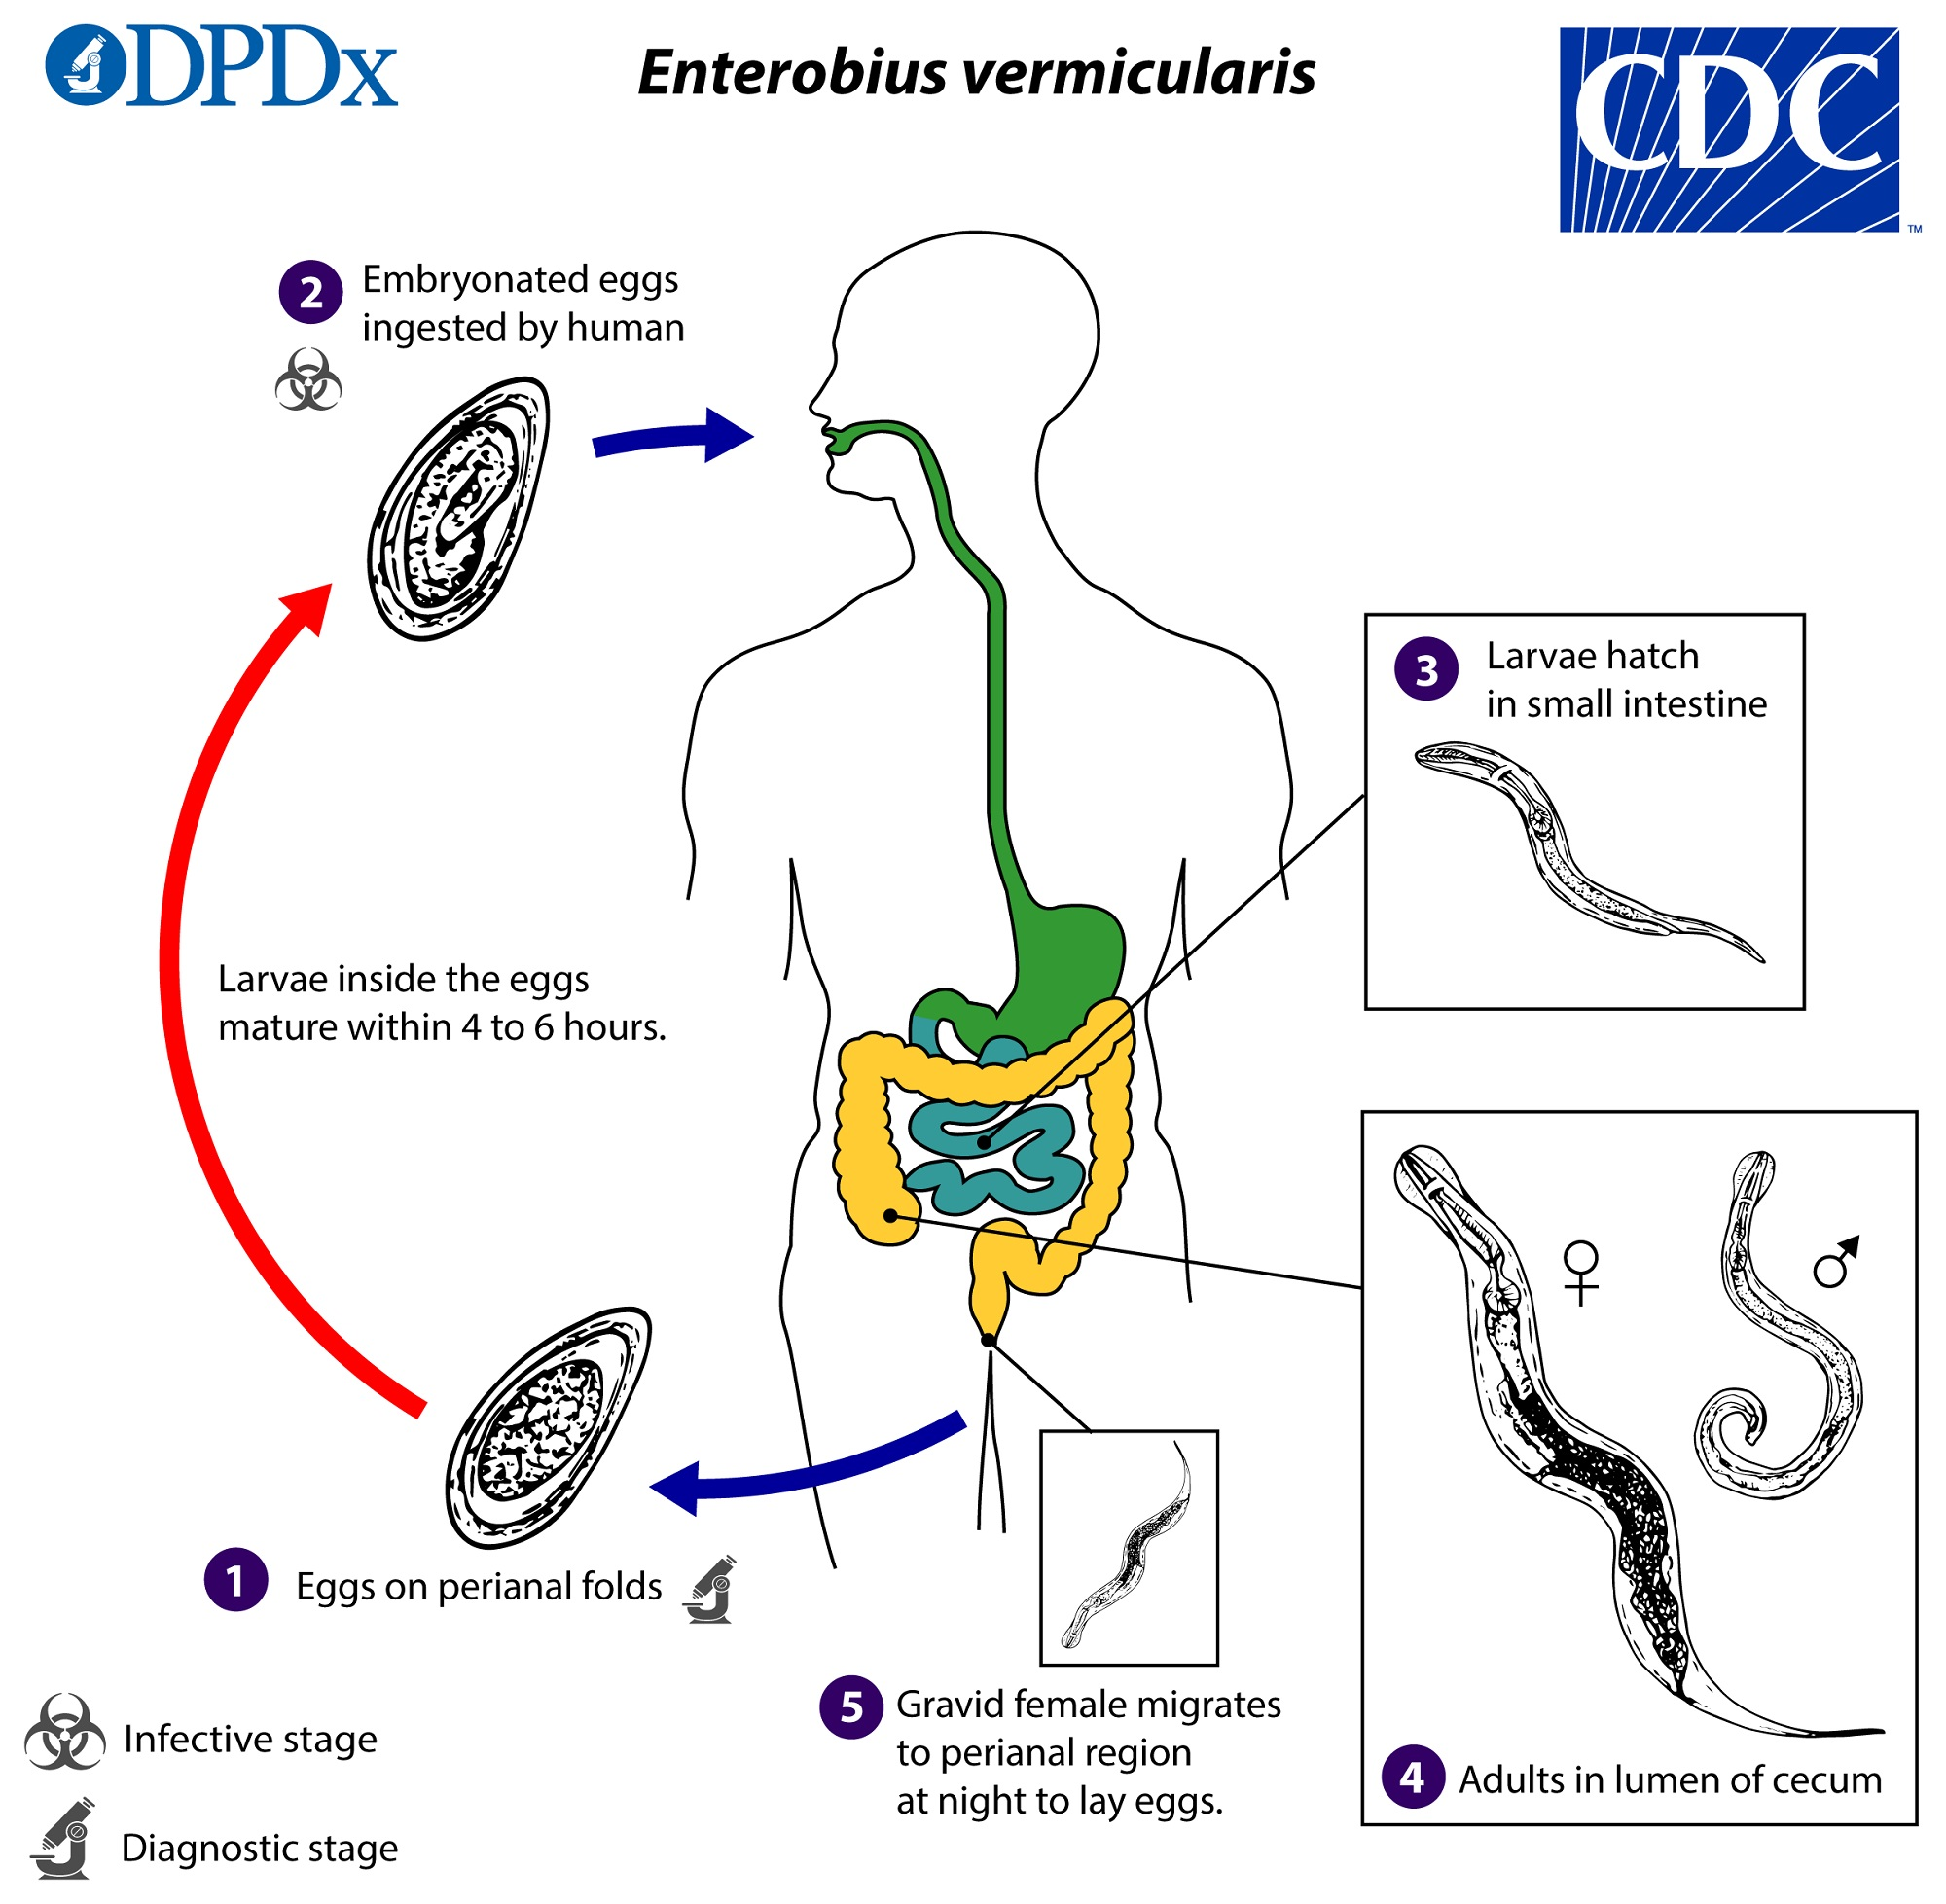 enterobius vermicularis morphology